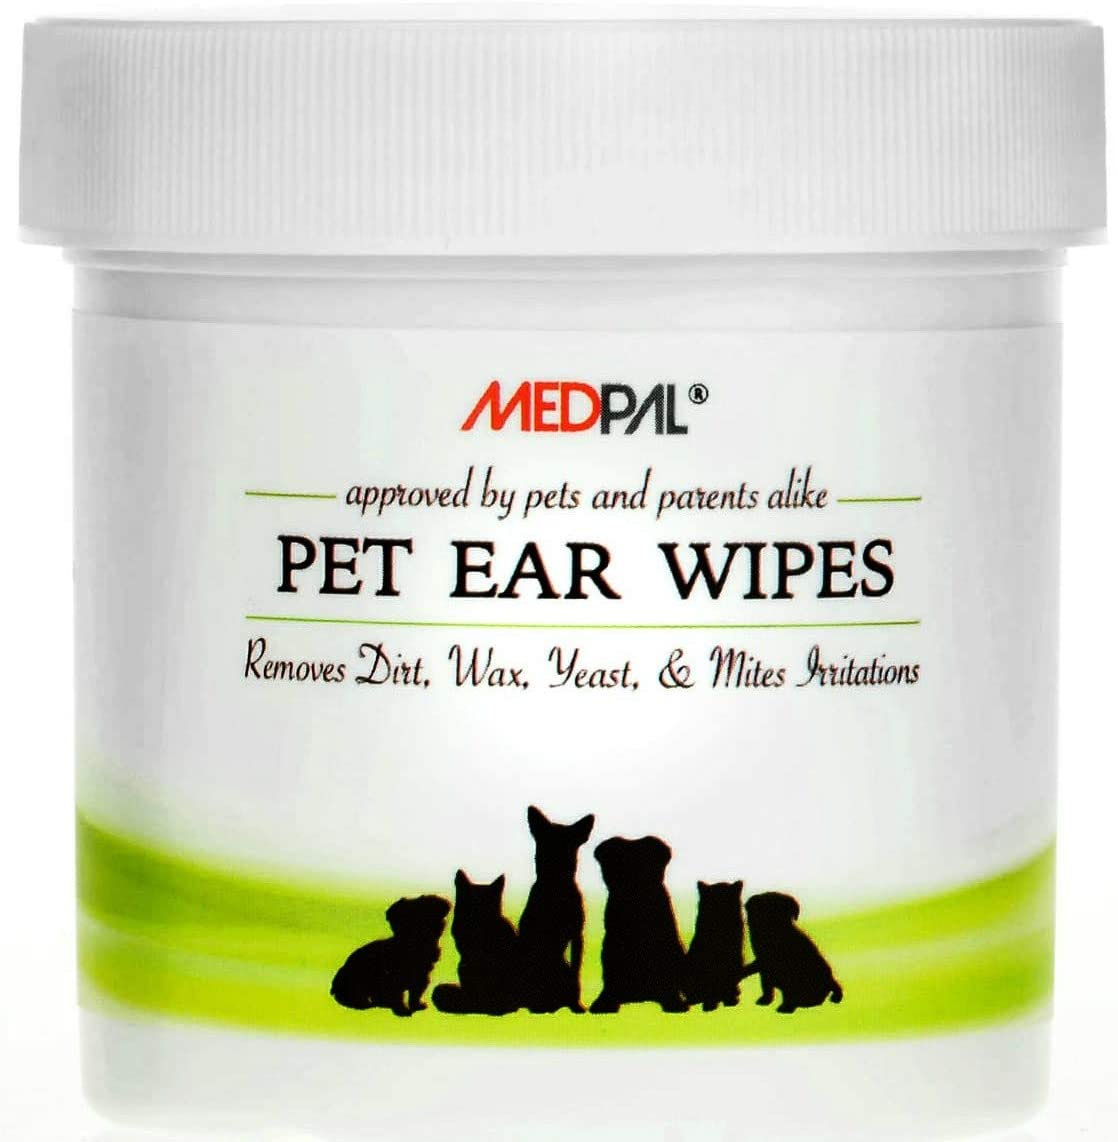 MedPal Pet Ear Wipes